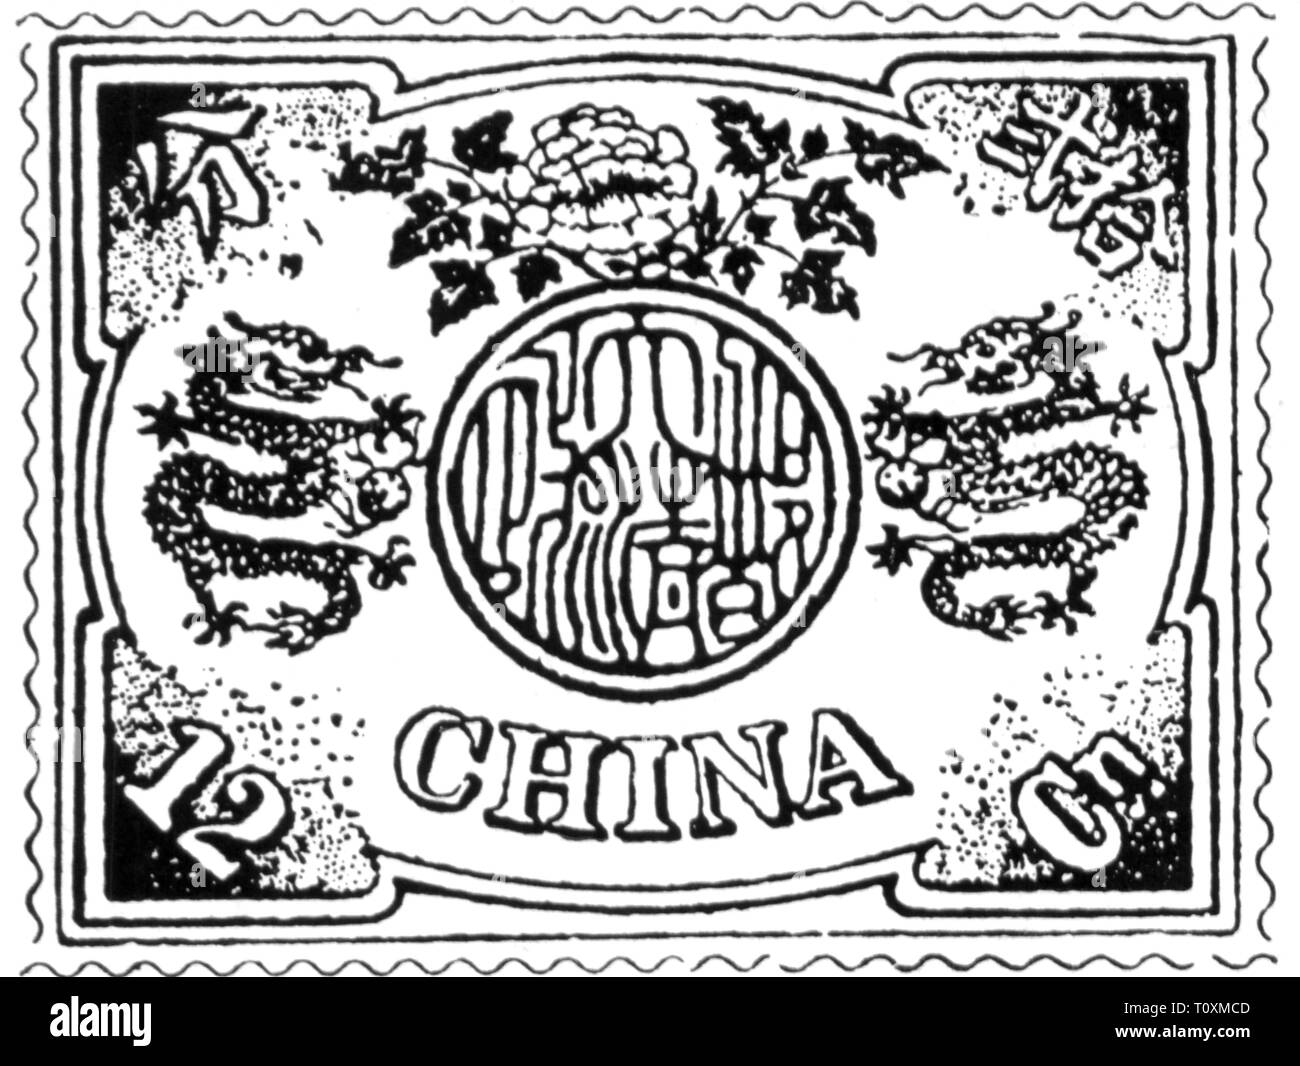 Stamp Postage Stock Photos & Stamp Postage Stock Images - Alamy